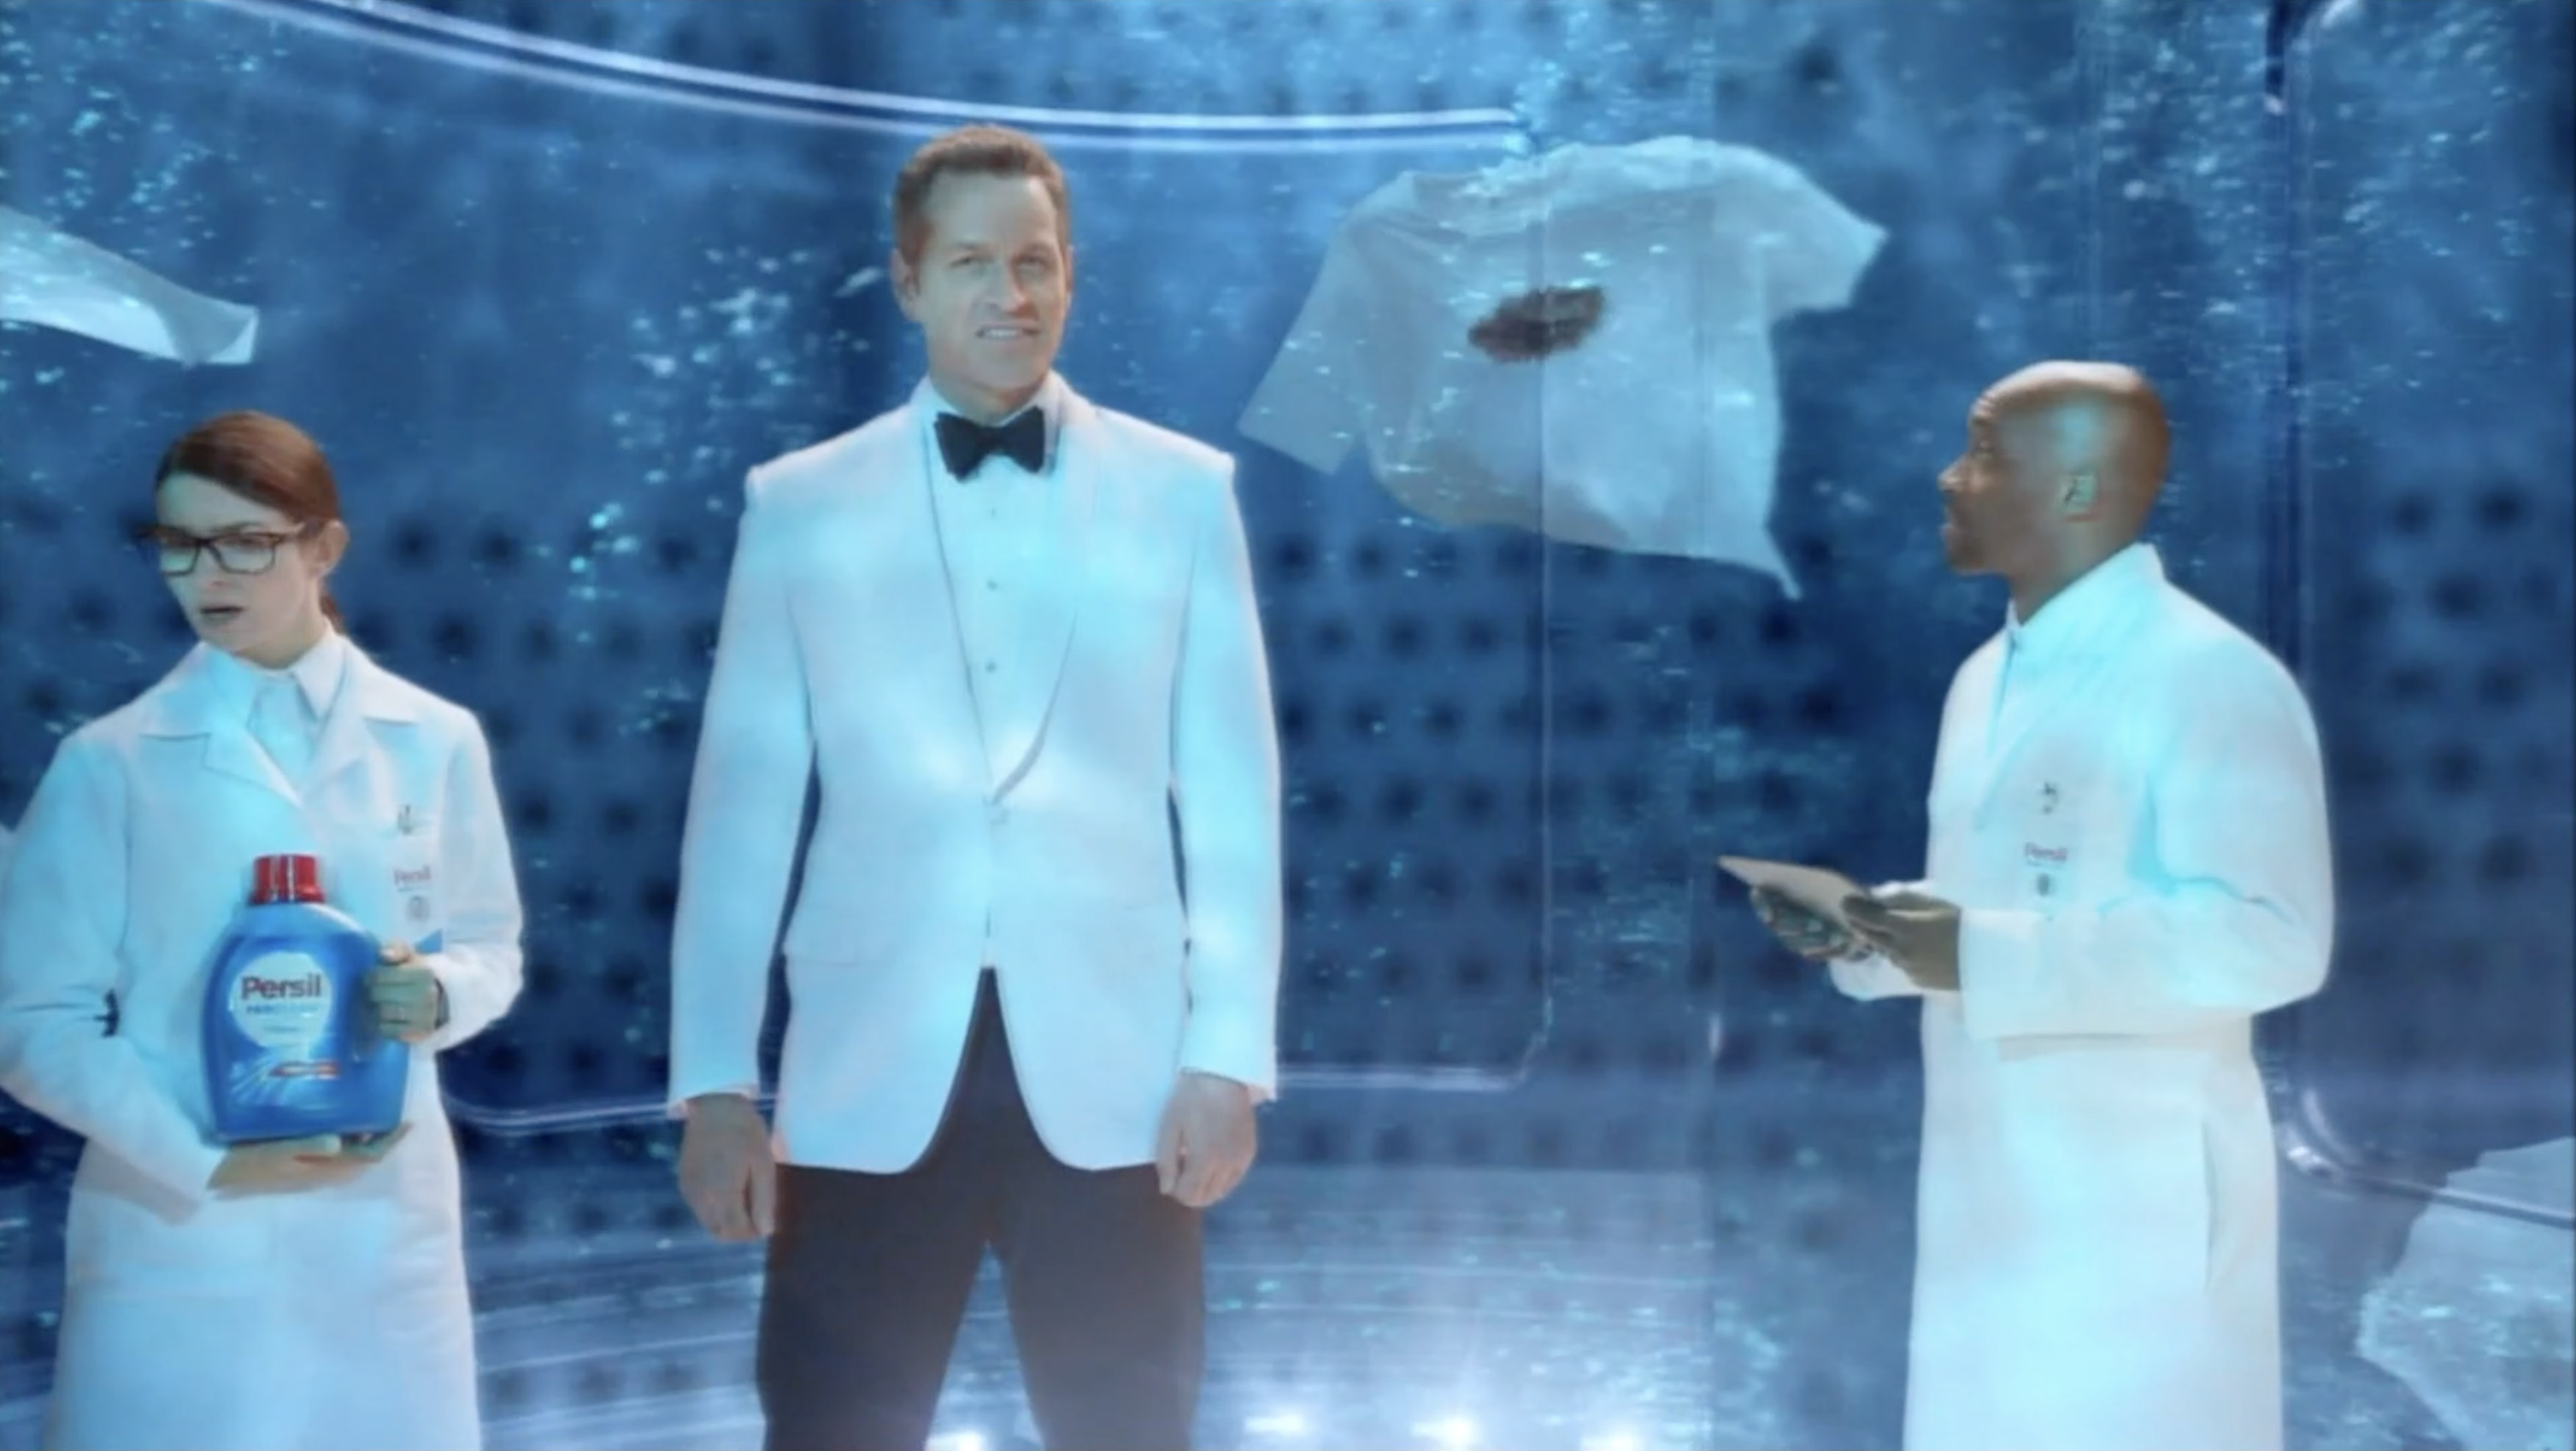 2019 Super Bowl commercials: Watch the pre-released spots